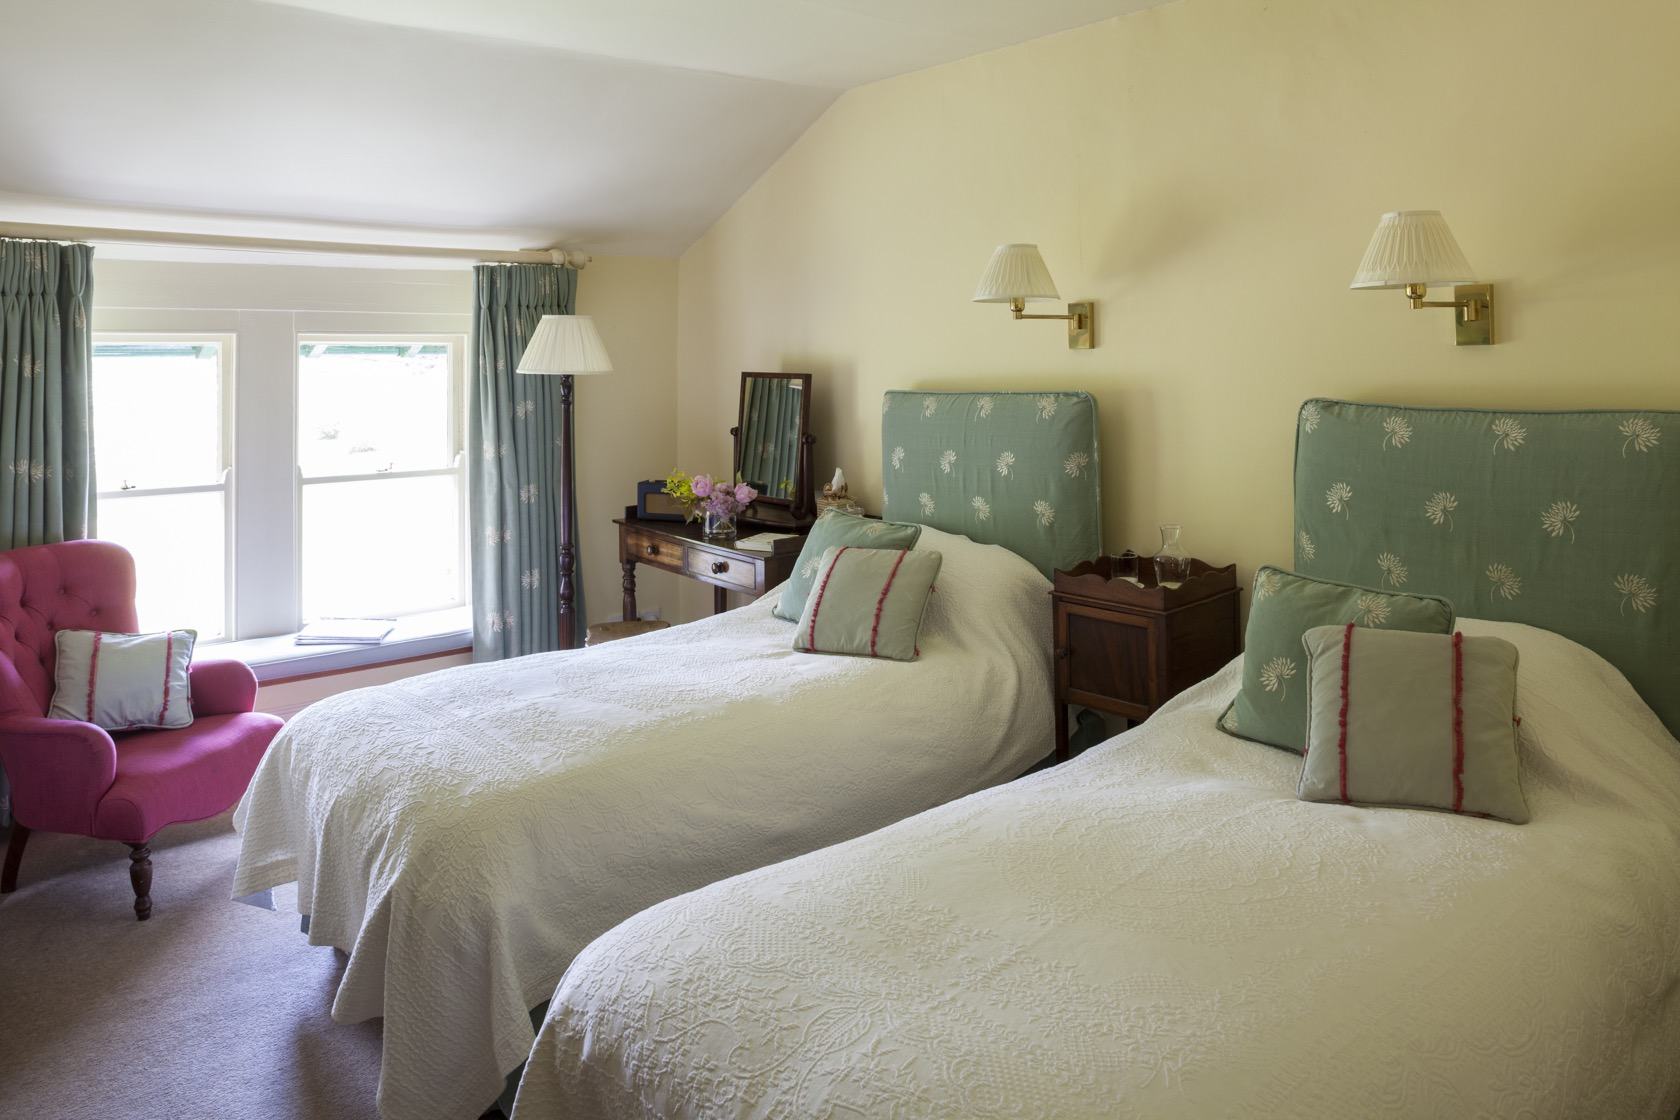 to show the size of country house hotel bedroom